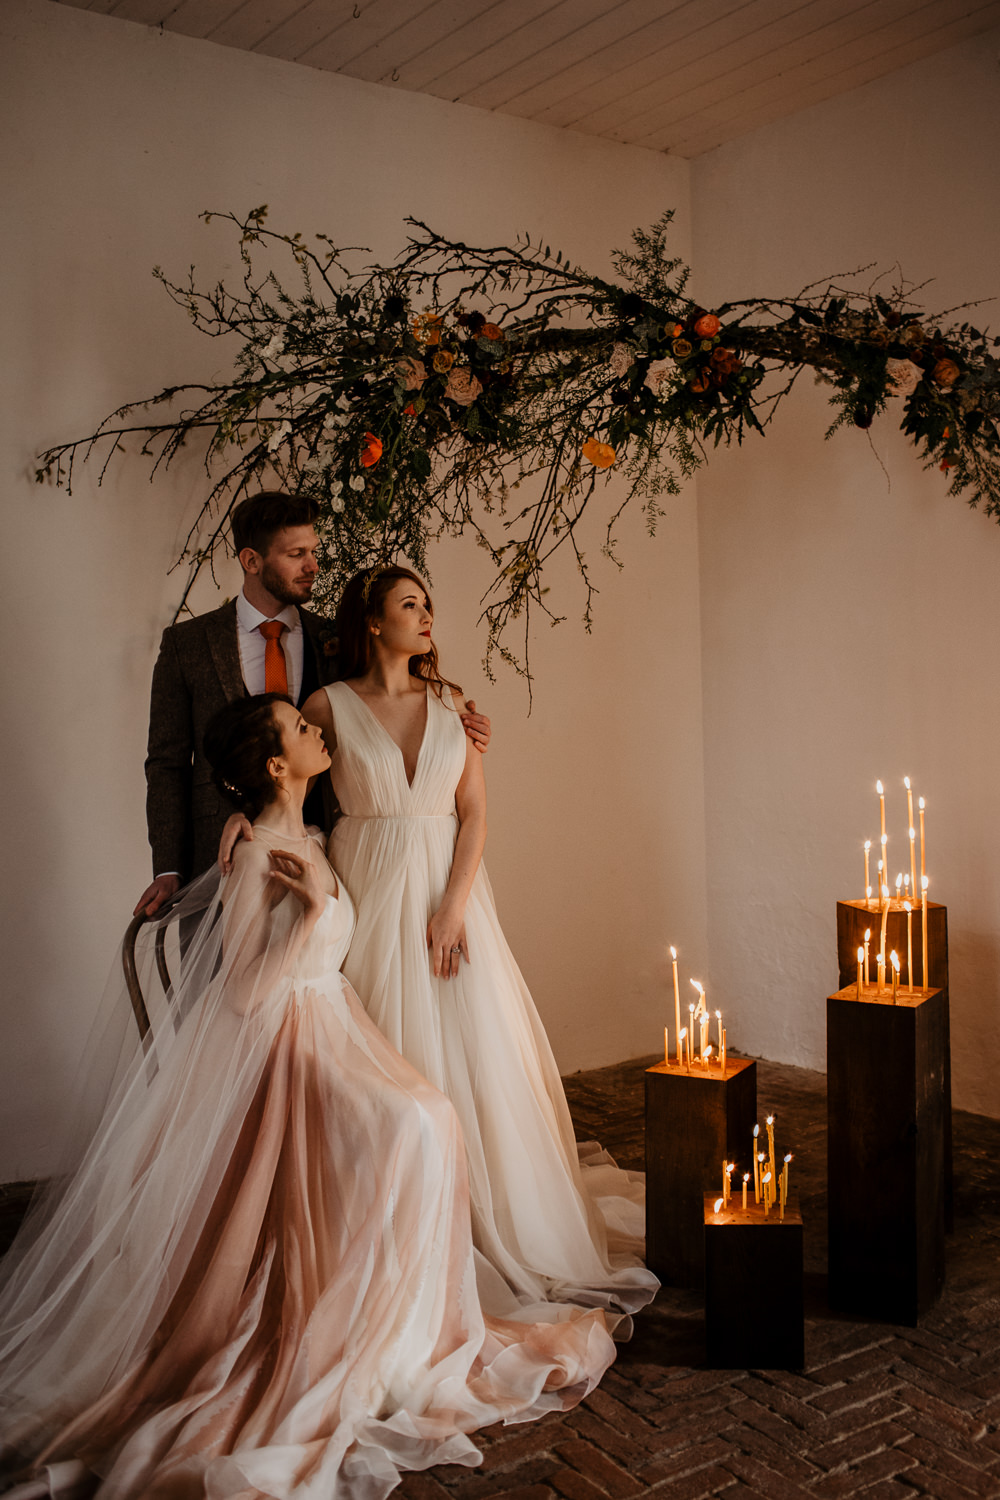 Elopement Wedding Ideas Oilvejoy Photography Branch Installation Flowers Wild Natural Orange Rose Autumn Fall Candles Backdrop Floral